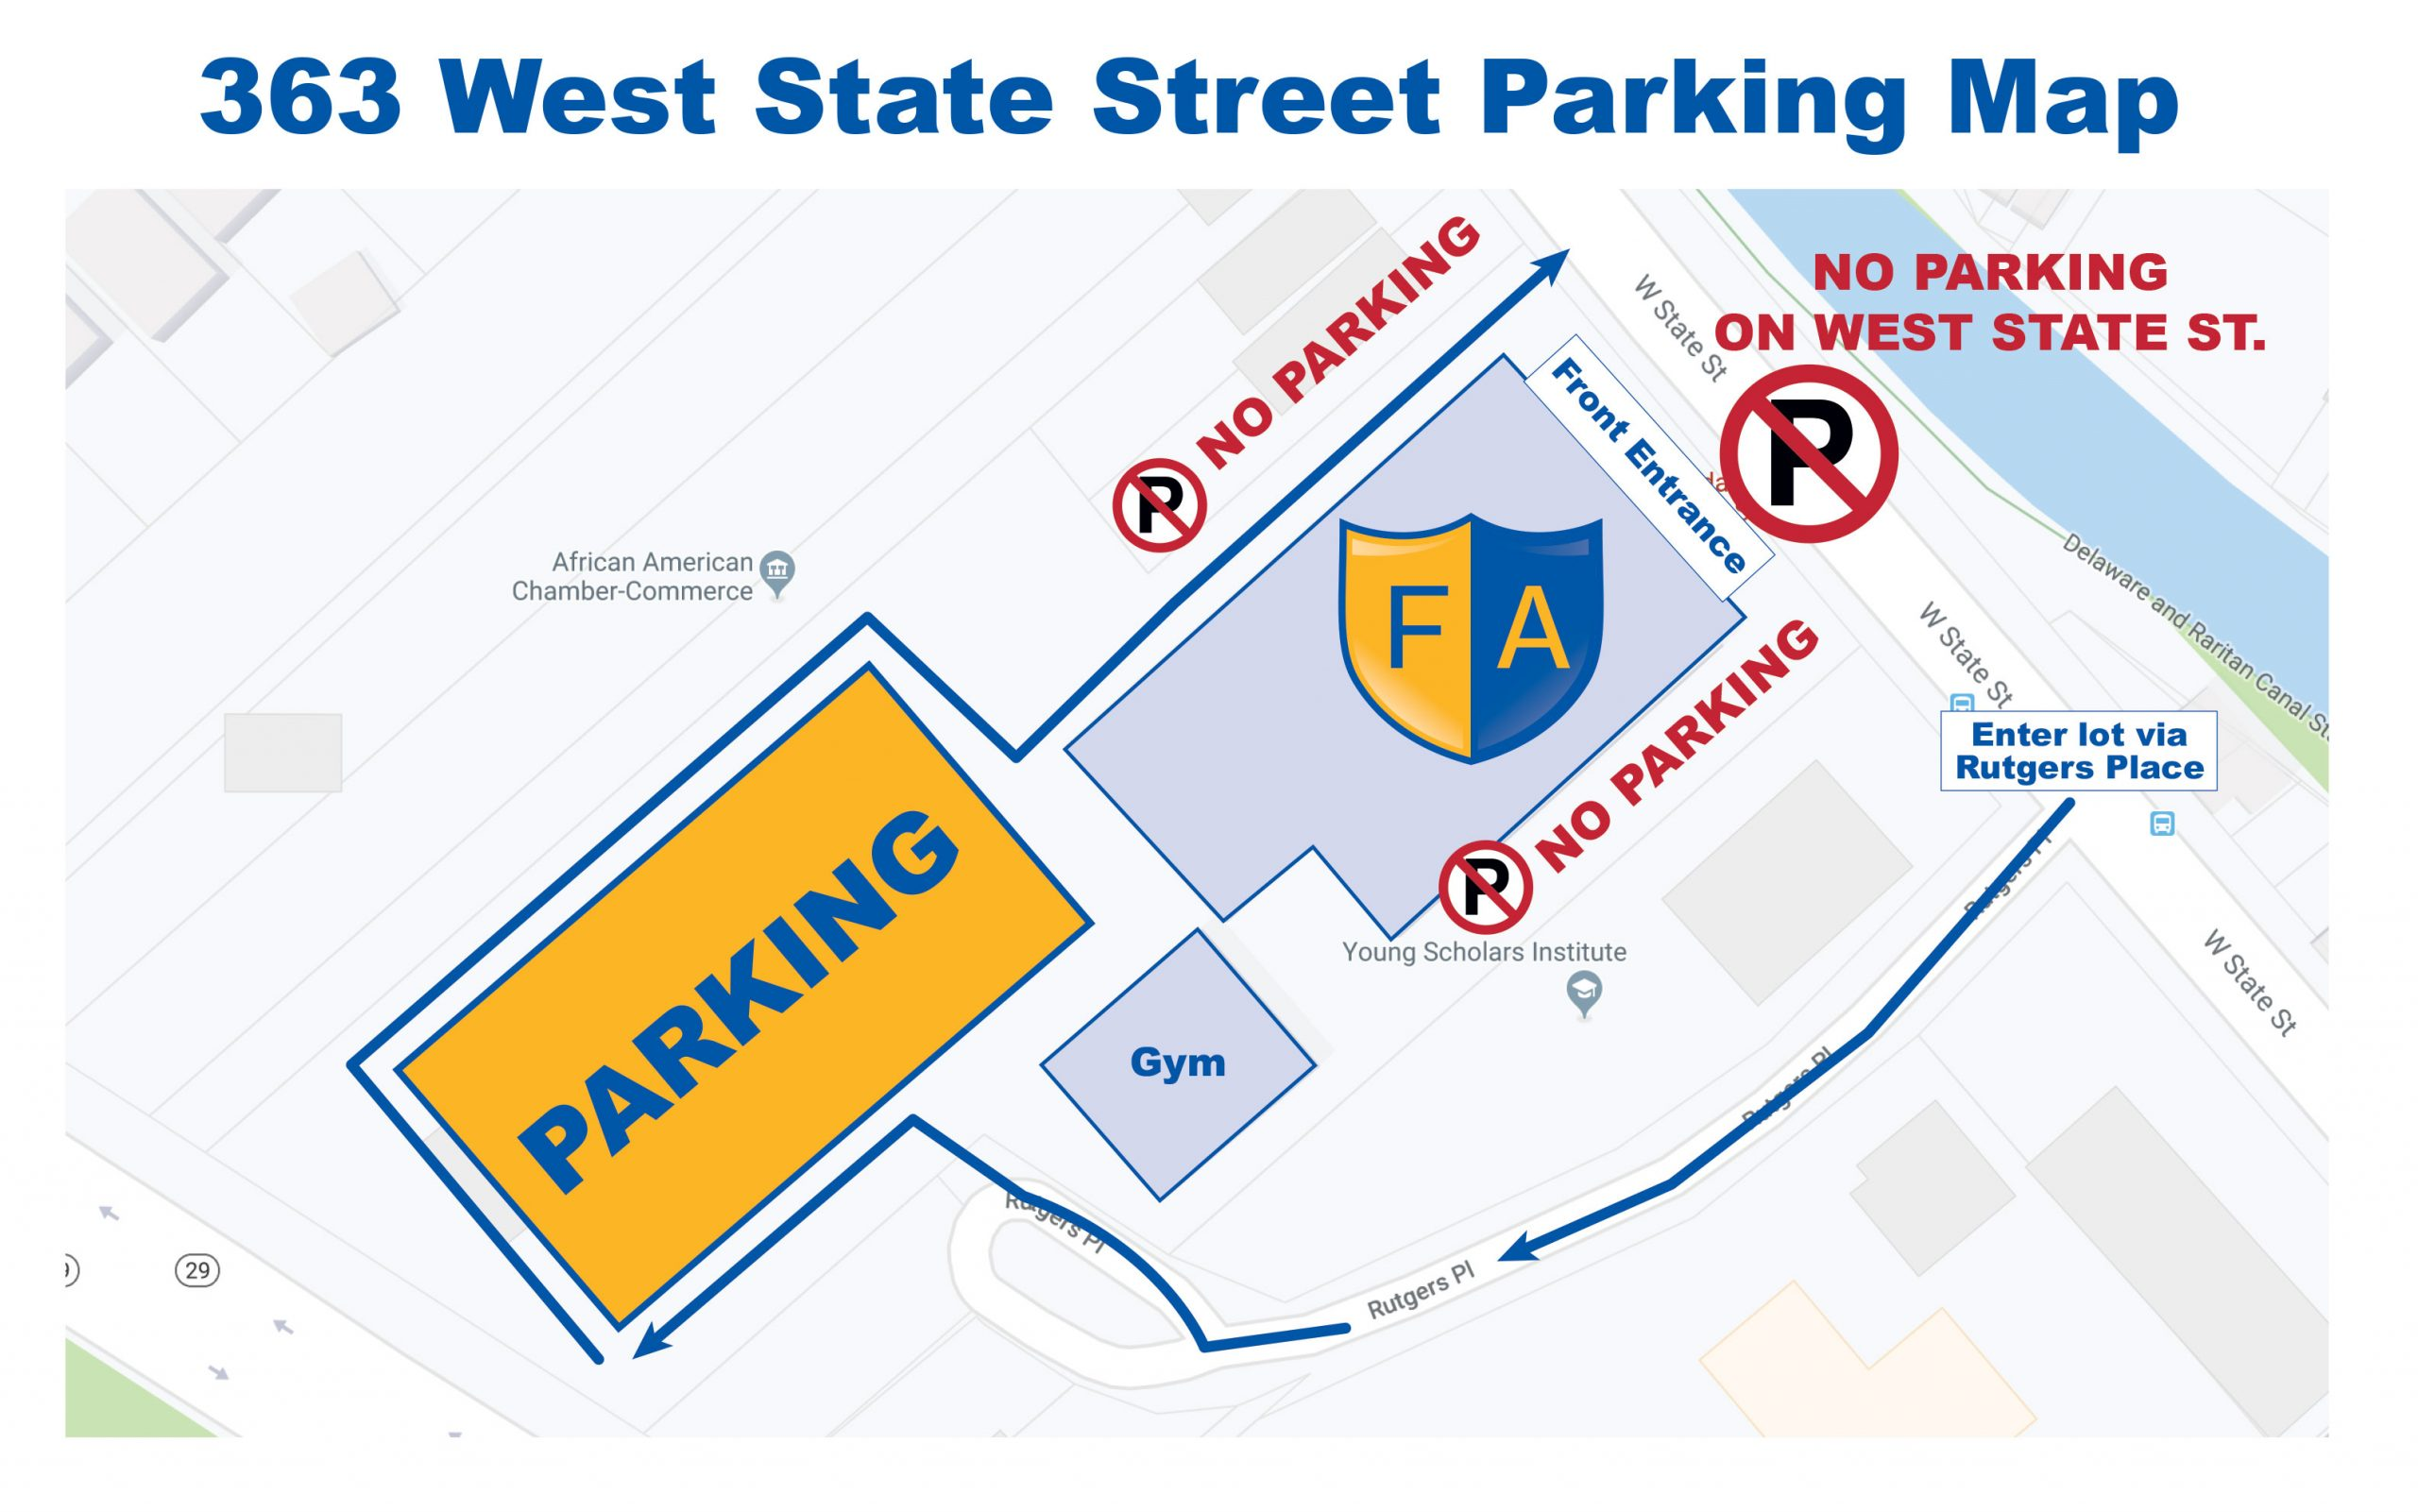 foundation-academies-363-west-state-street-parking-map